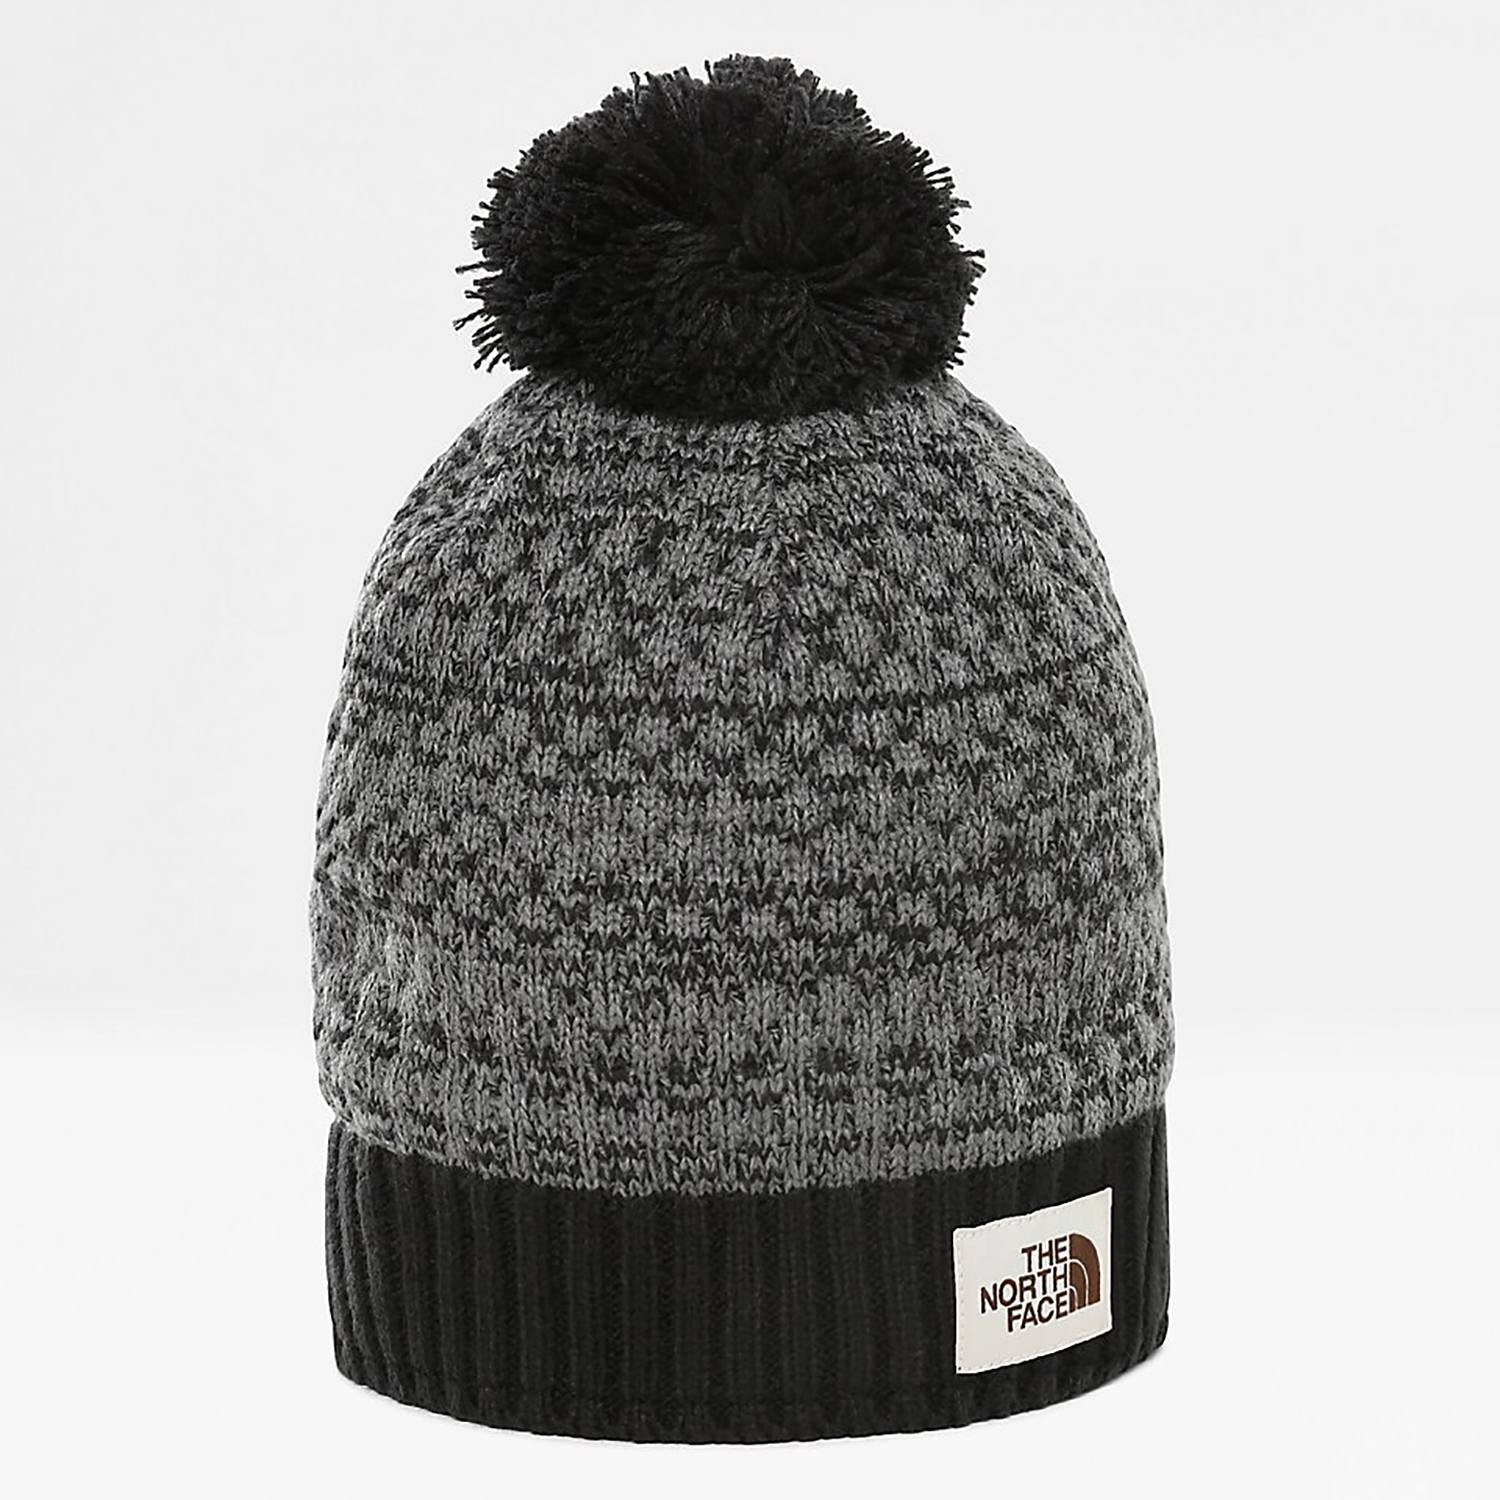 THE NORTH FACE ANTLERS BEANIE (9000036624_36007)